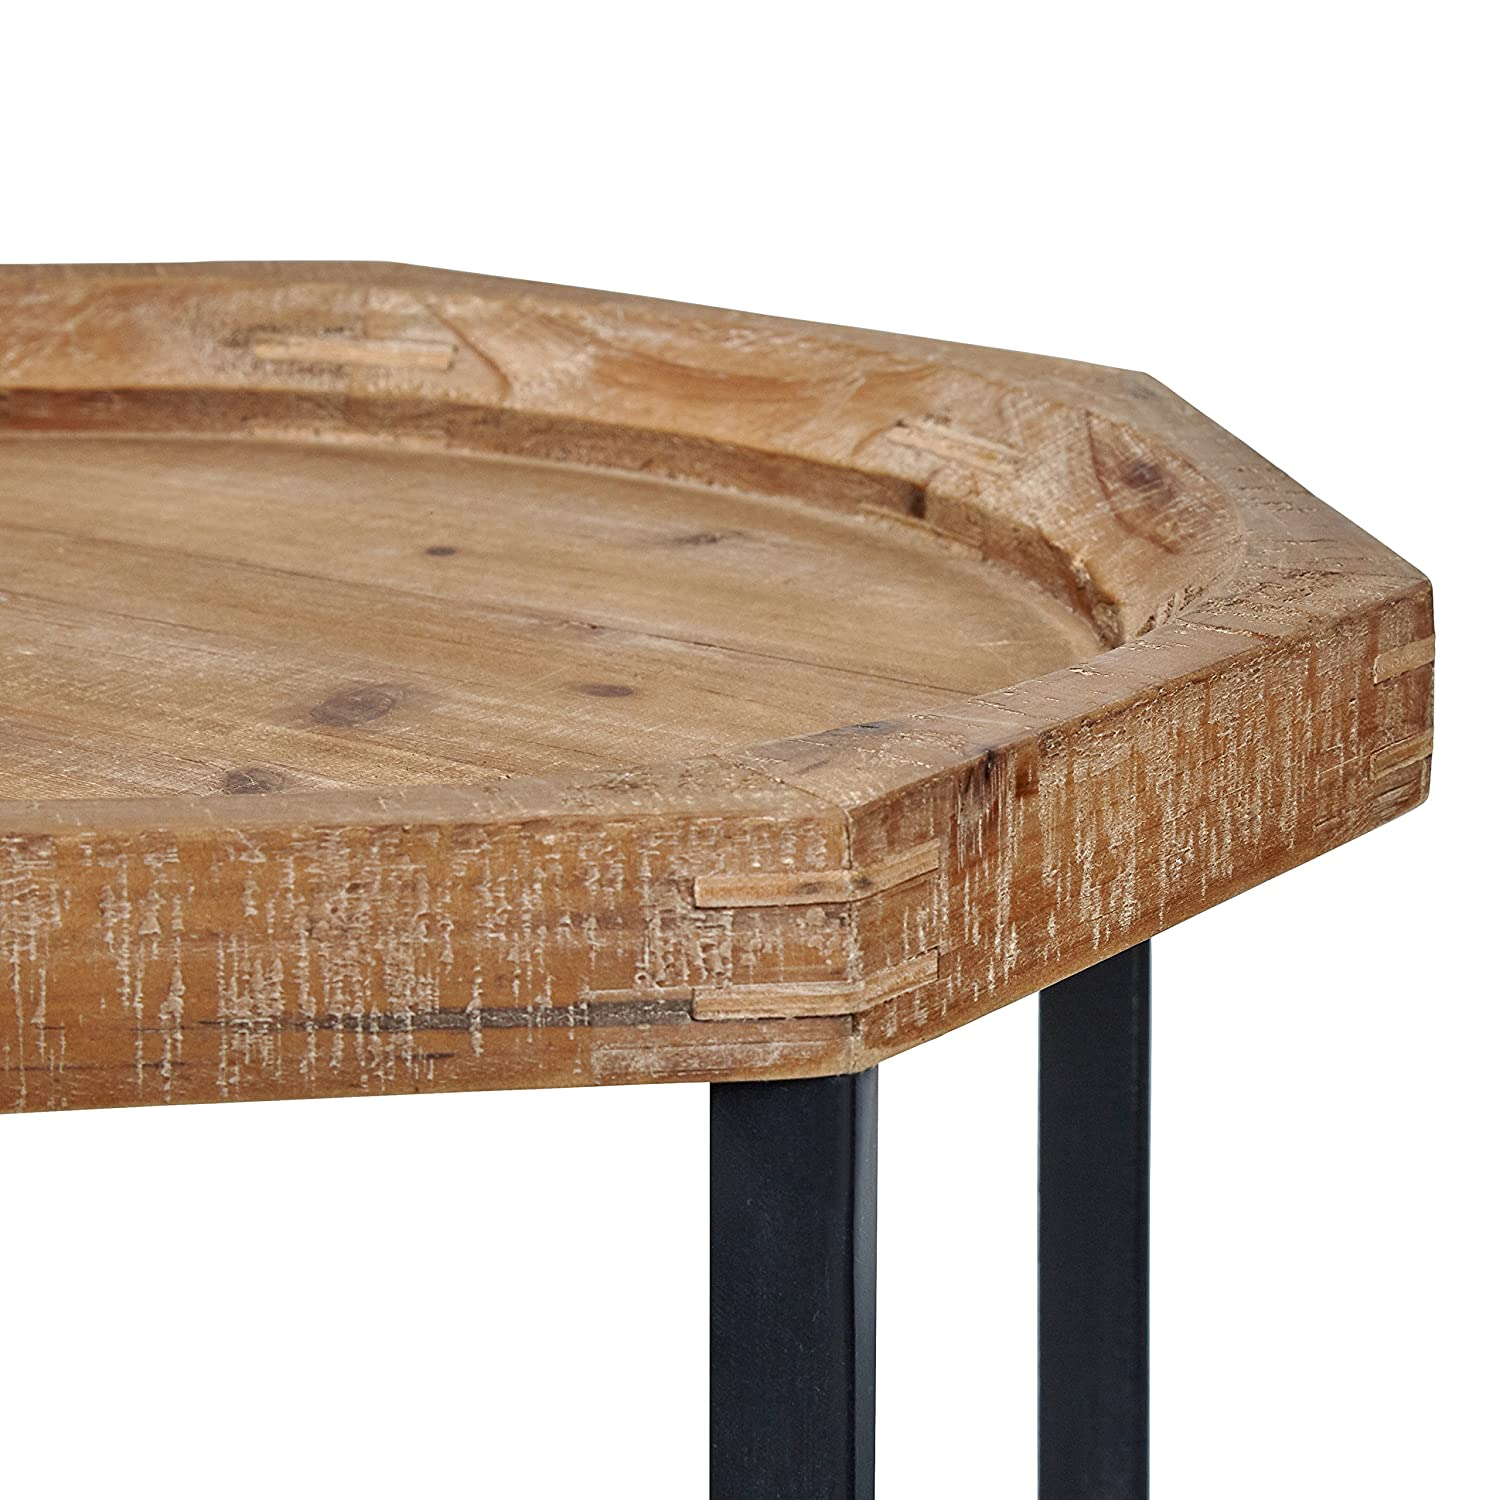 Stone Beam Arie Rustic Octagonal End Table, 17.3 W, Natural